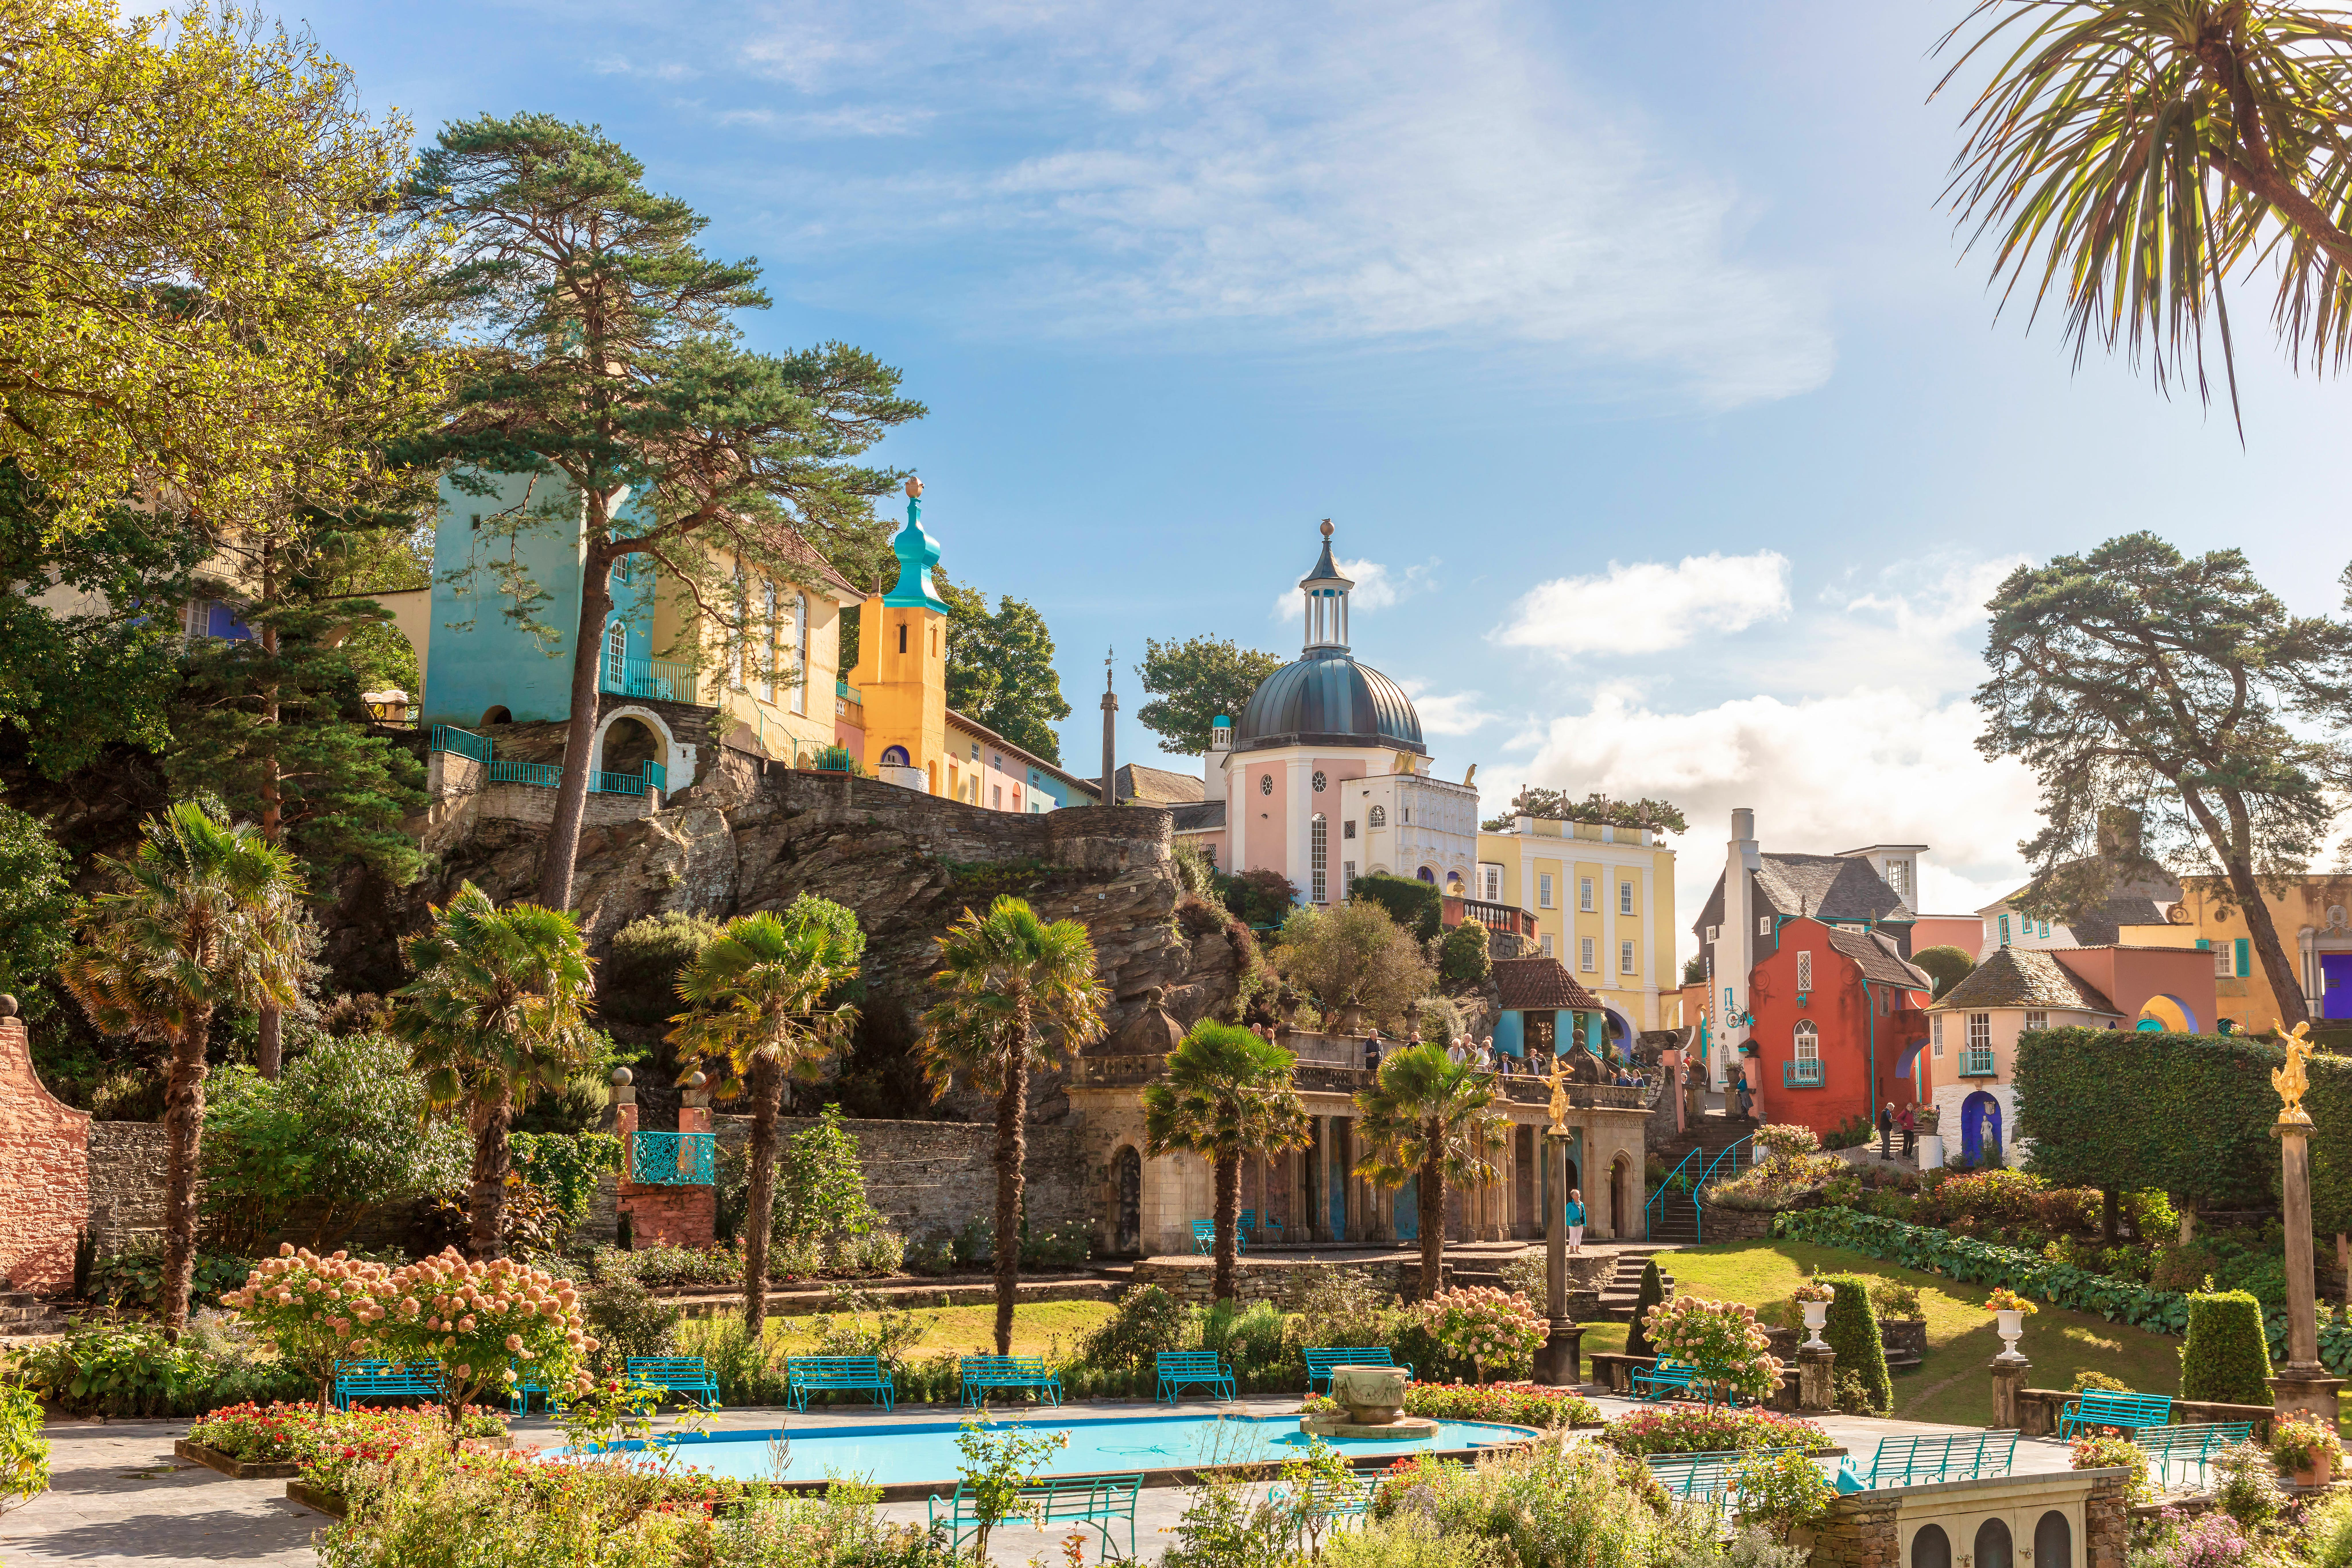 A park in Portmeirion; it has been planted with Mediterranean-style trees and plants, and it's surrounded by several elevated, brightly coloured buildings, giving the impression of an Italian hilltop town.